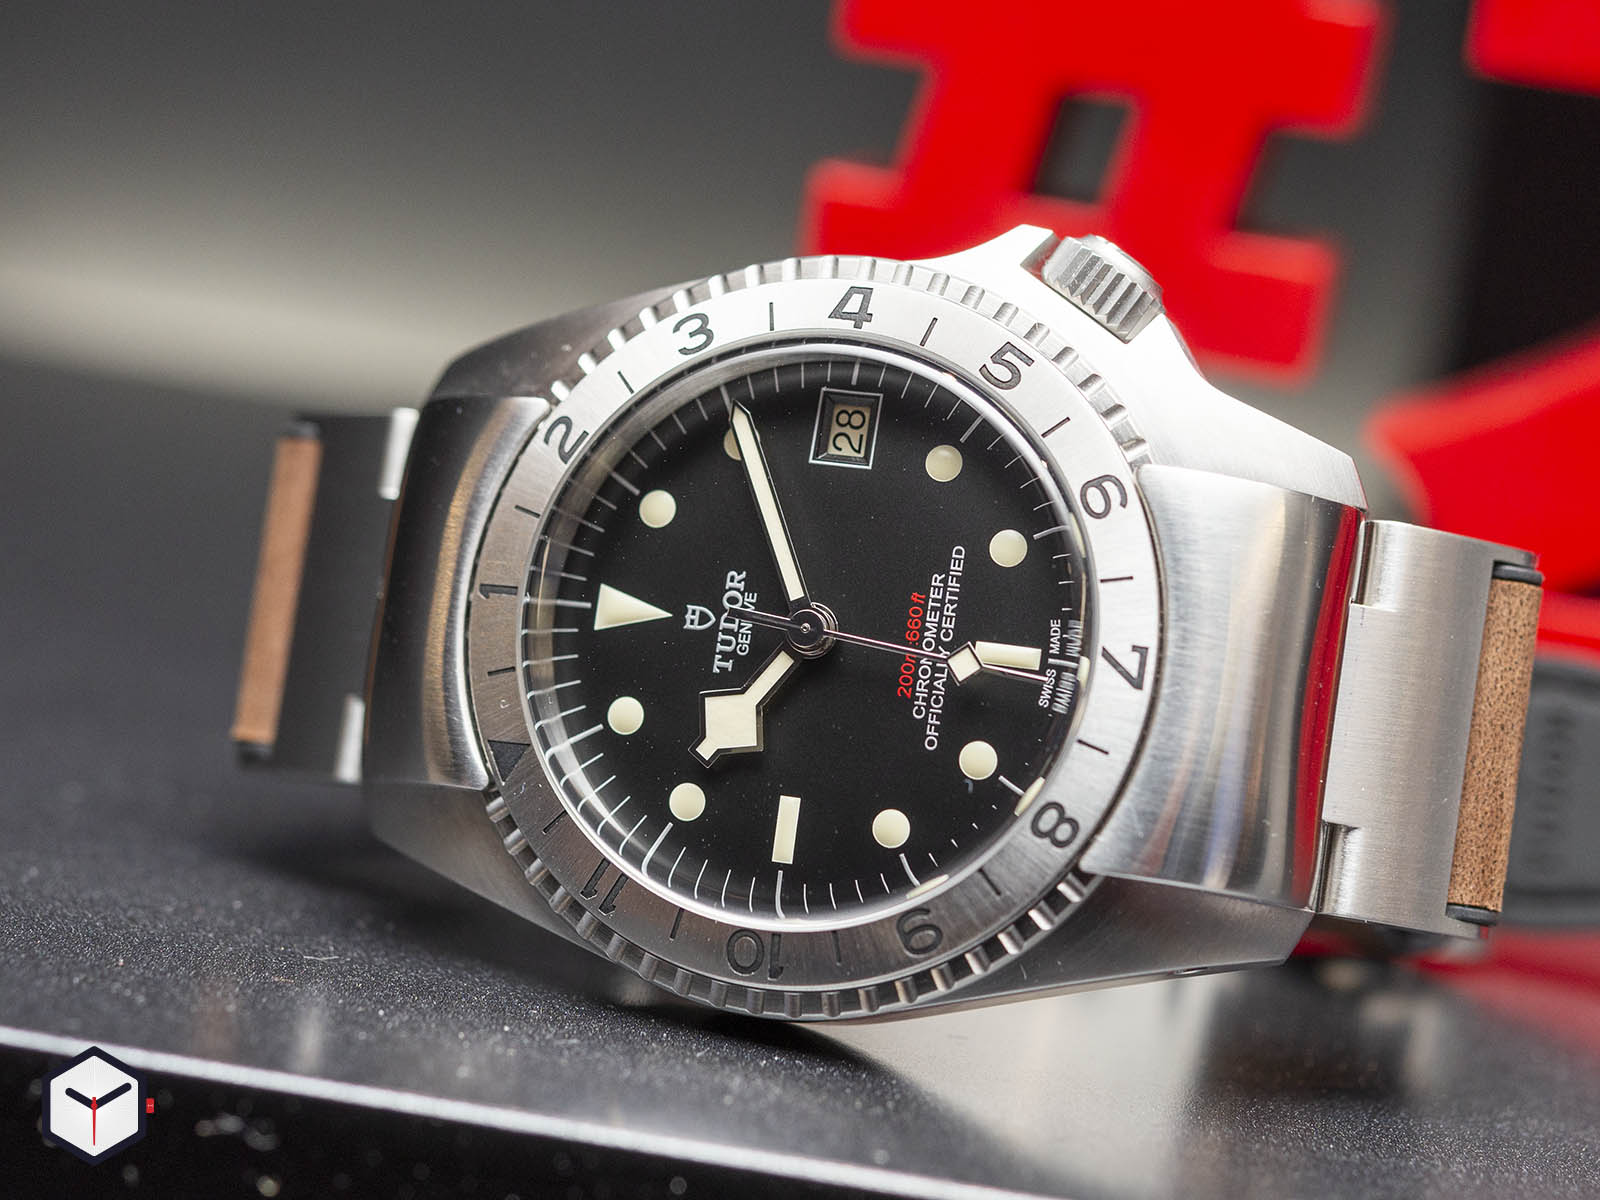 m70150-0001-tudor-black-bay-p01-baselworld-2019-4.jpg